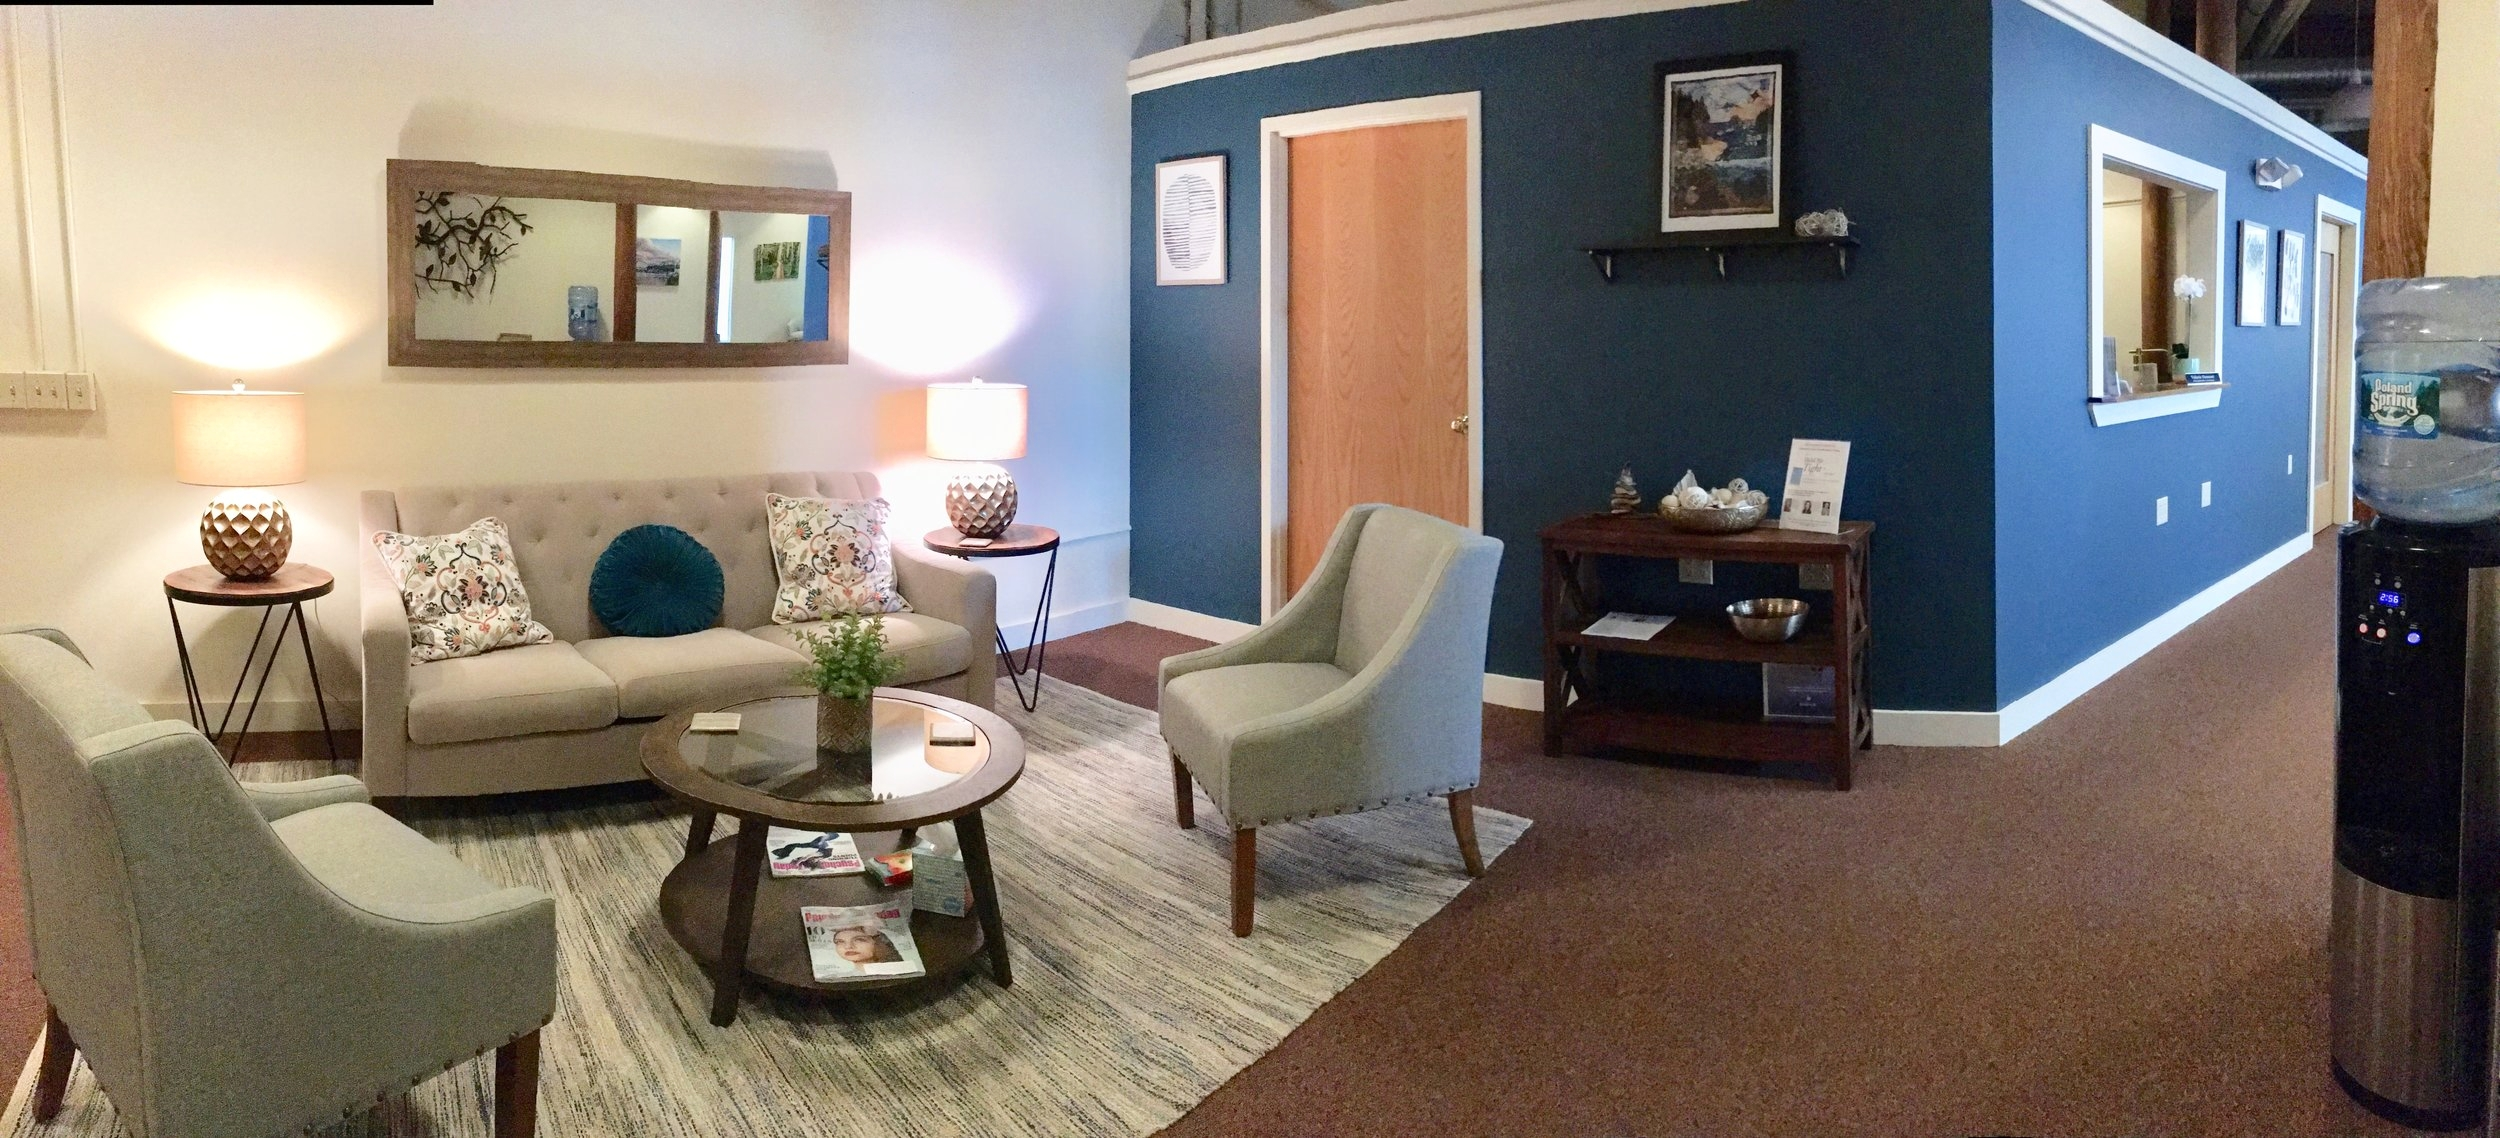 Our office lobby provides a comfortable place to enjoy a cup of tea and read or use our wifi.